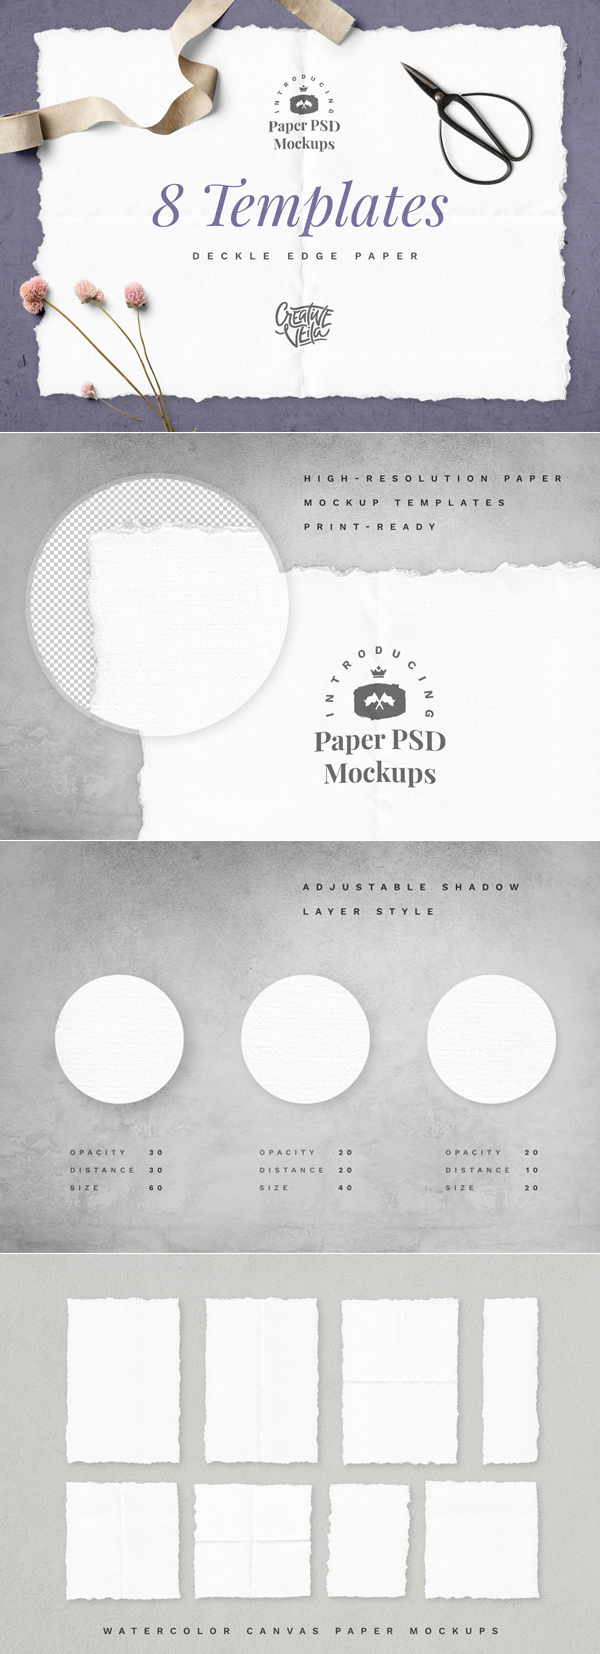 Freebies for 2019: Free Deckle Edge Paper Mockup Set